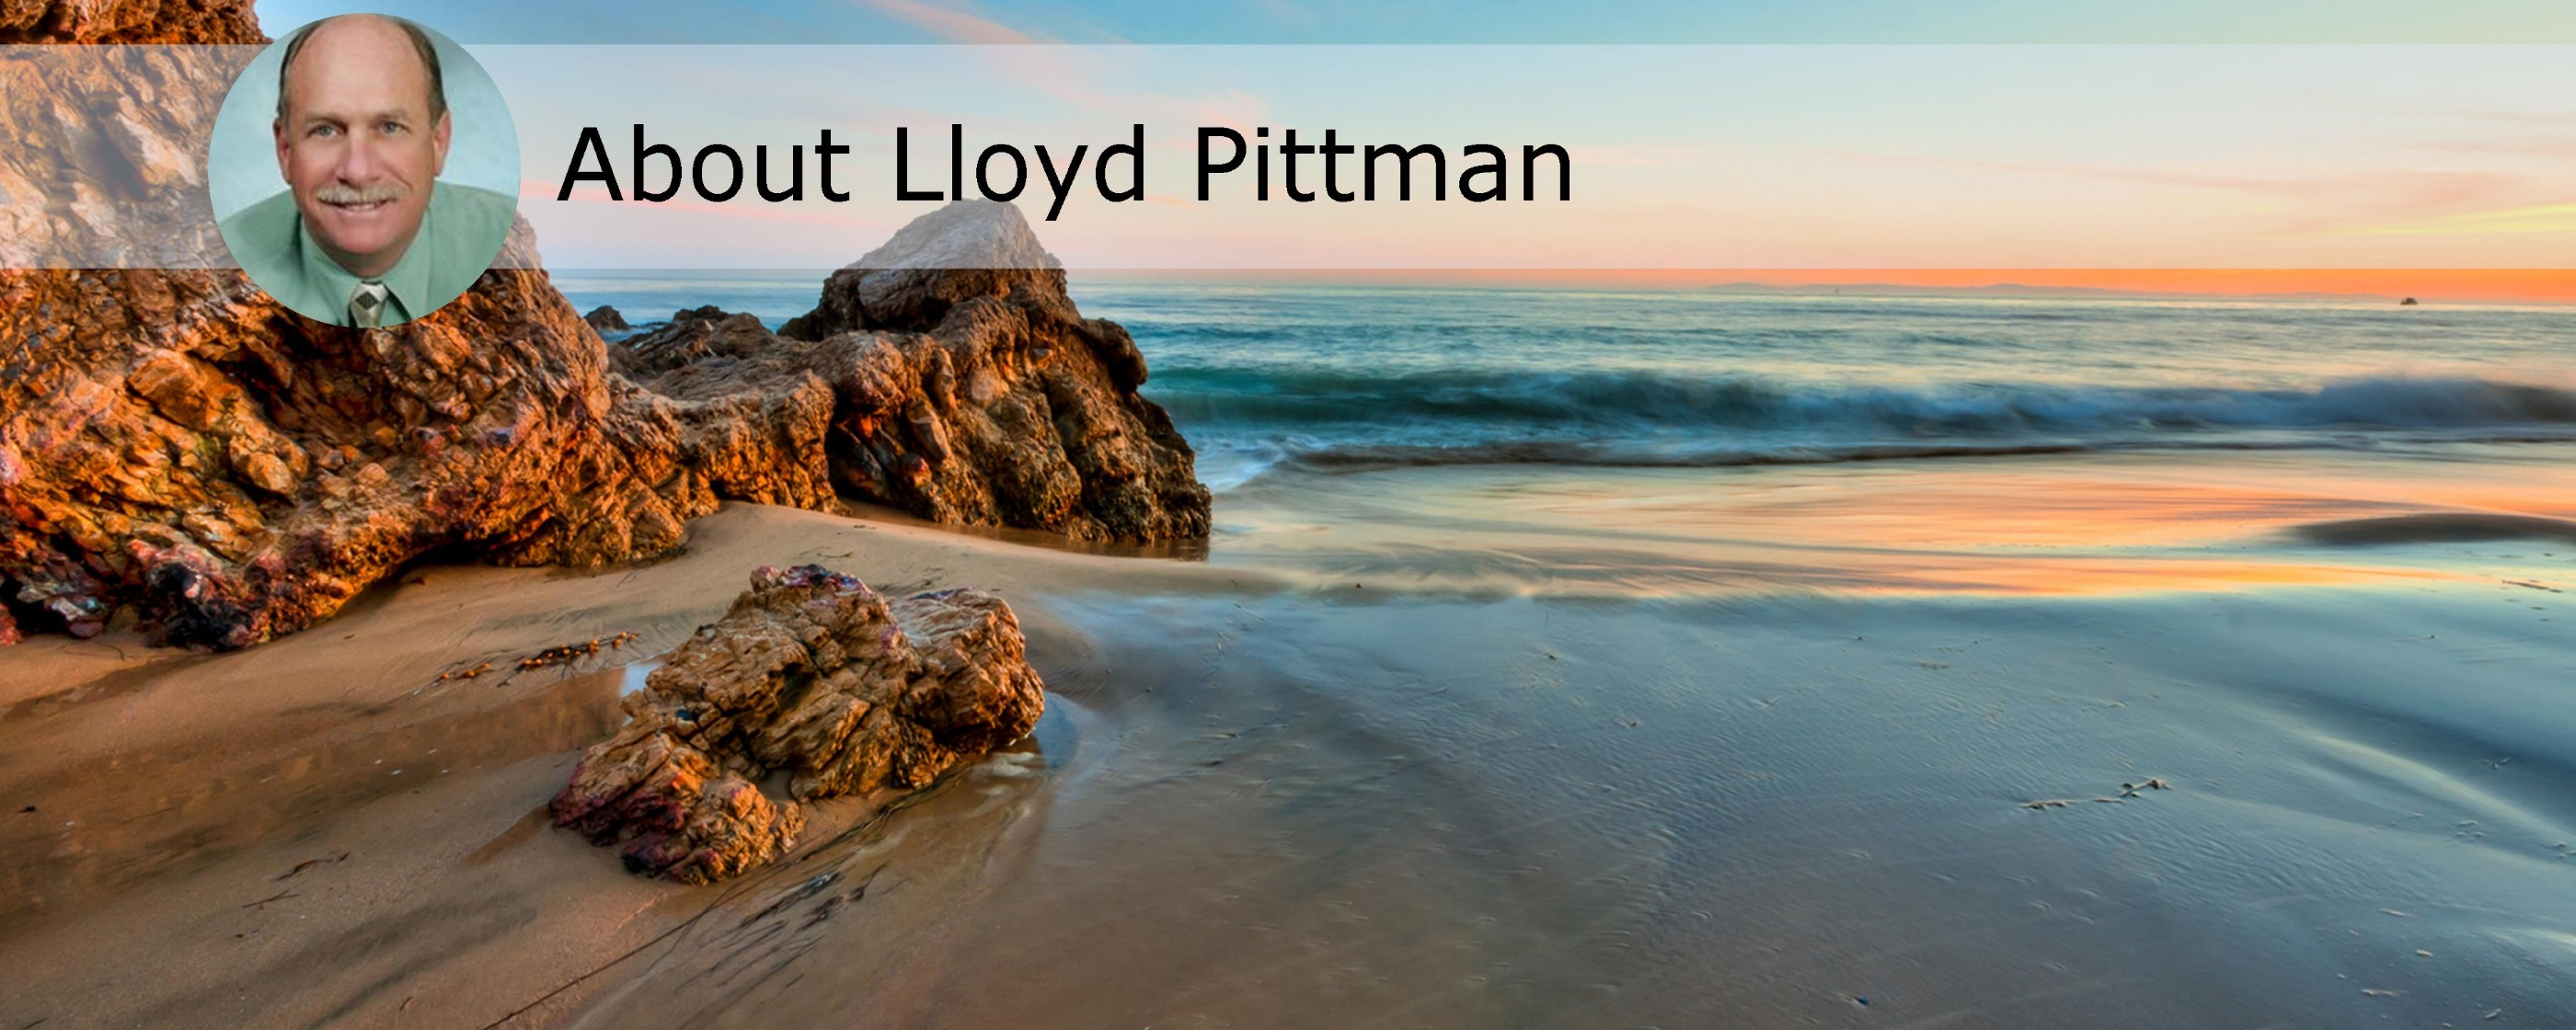 About Lloyd Pittman